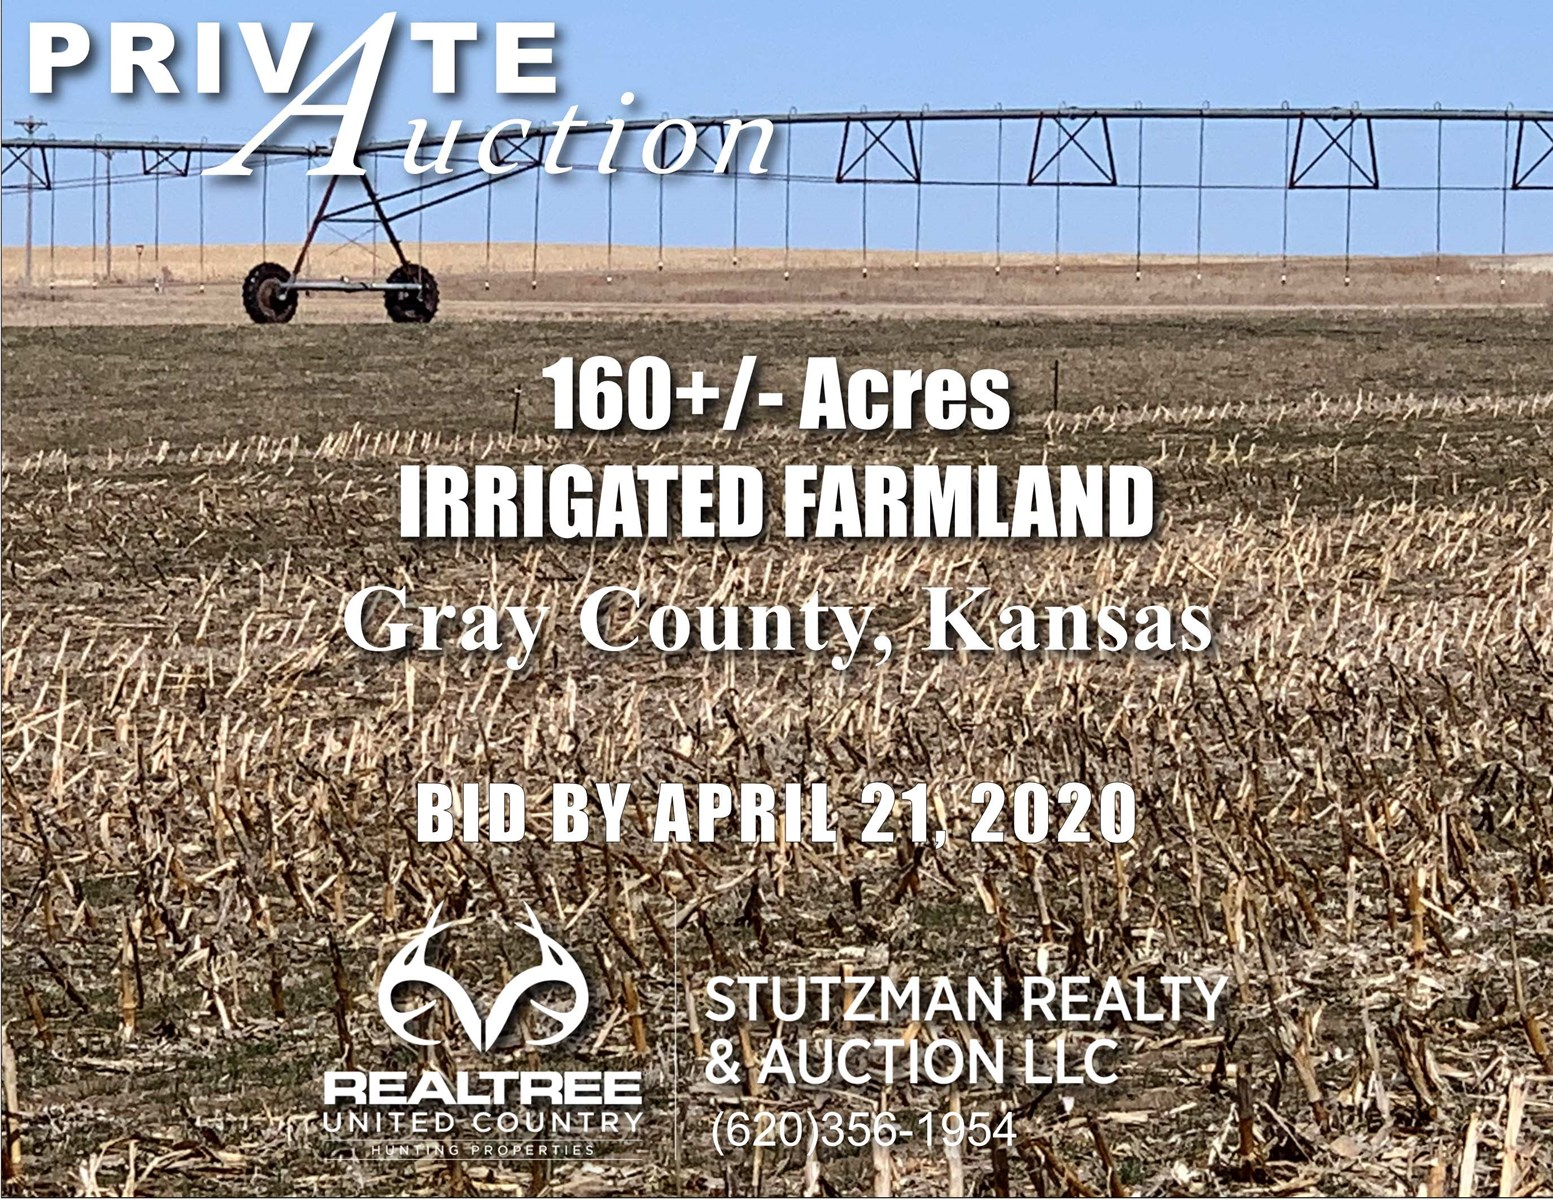 GRAY COUNTY KANSAS 160+/- ACRES IRRIGATED FARMLAND